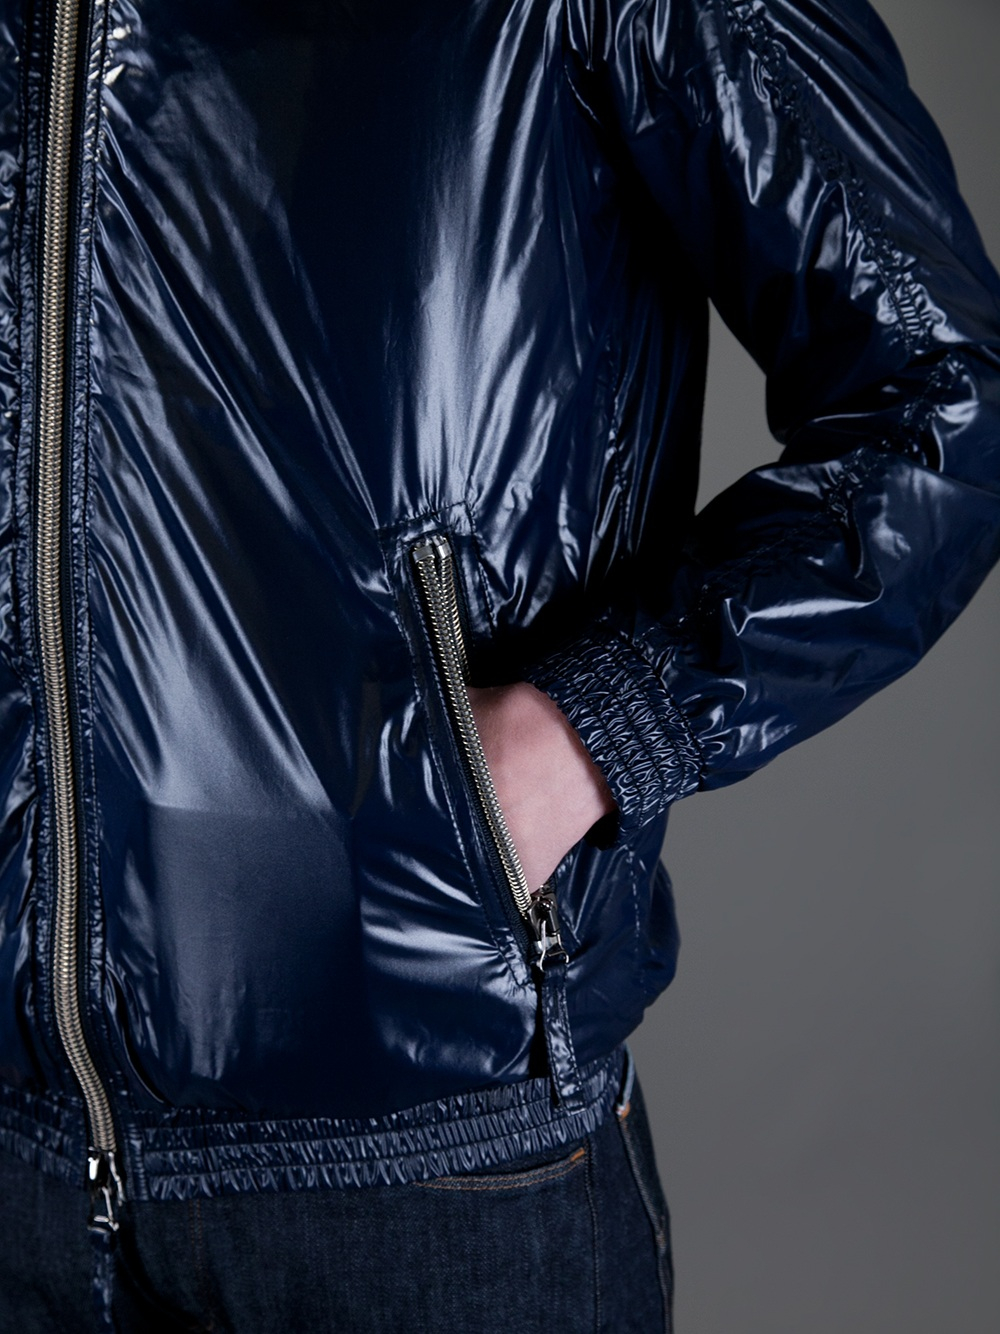 More Details Moncler Men's Maya Shiny Down Puffer Jacket with Hood Details Moncler